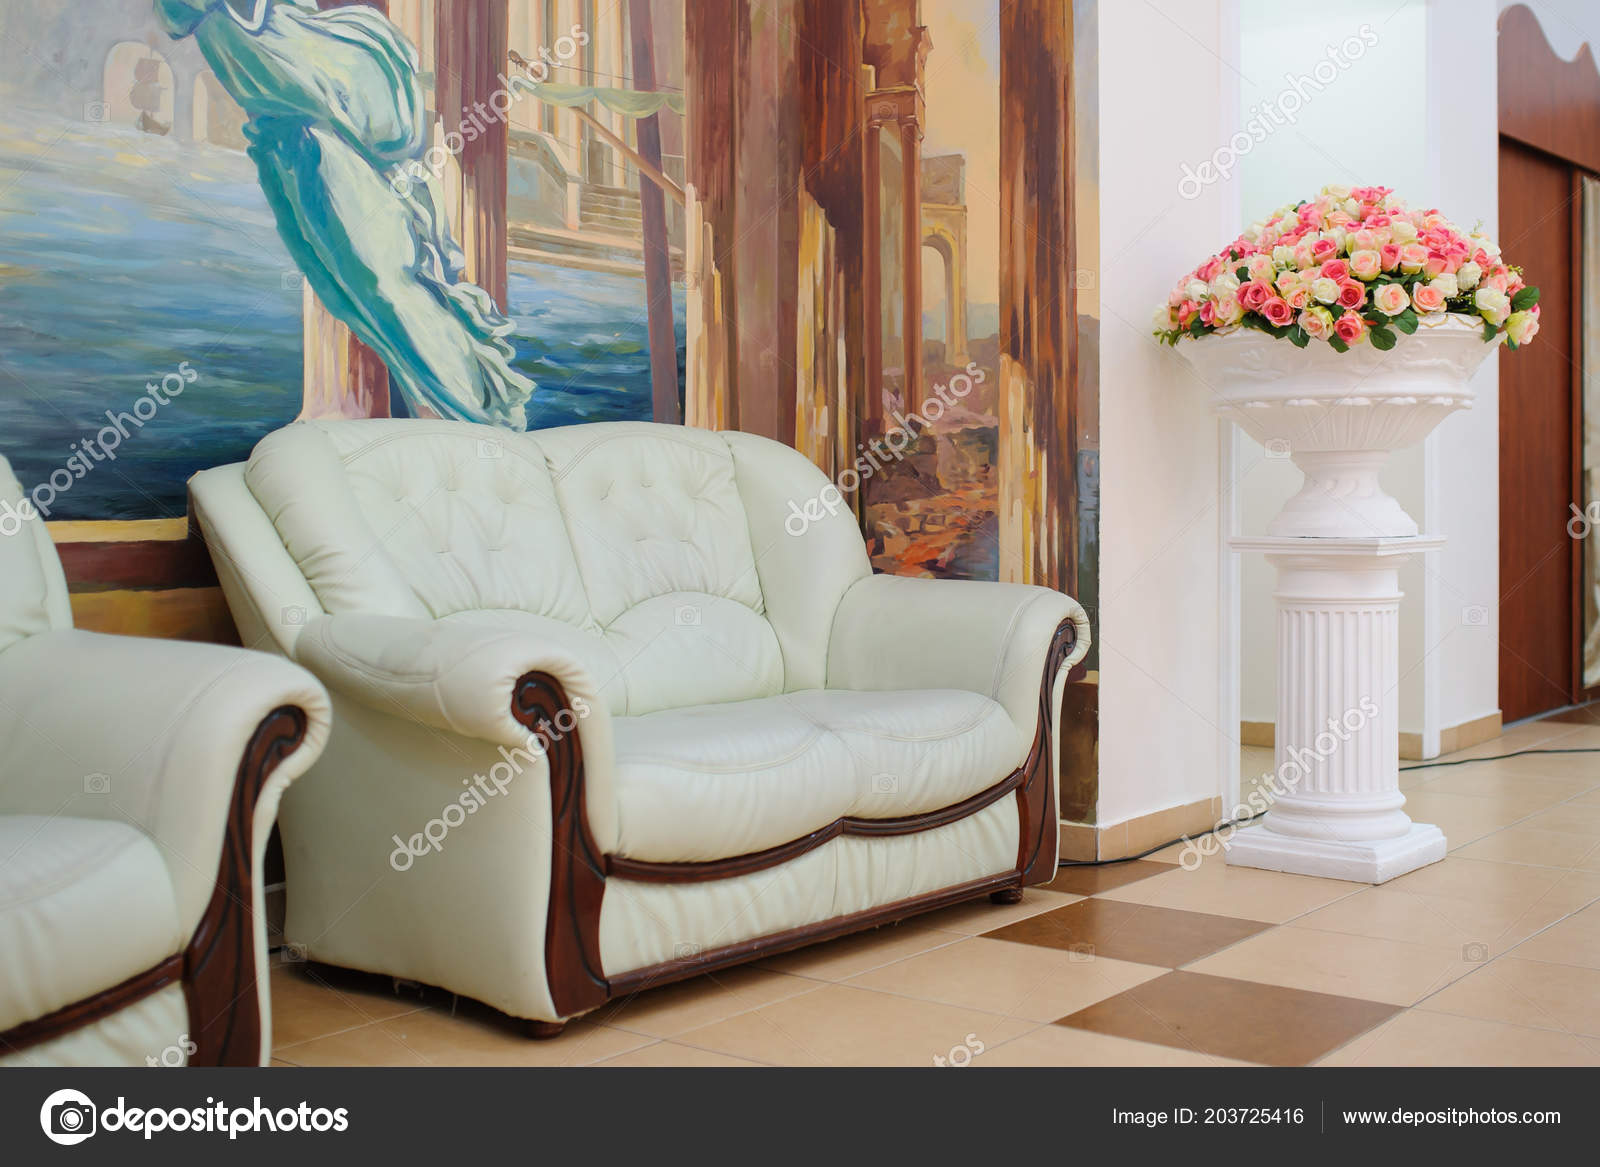 White Sofa Wooden Elements Painted Wall Bowl Flowers Stokovoe Foto